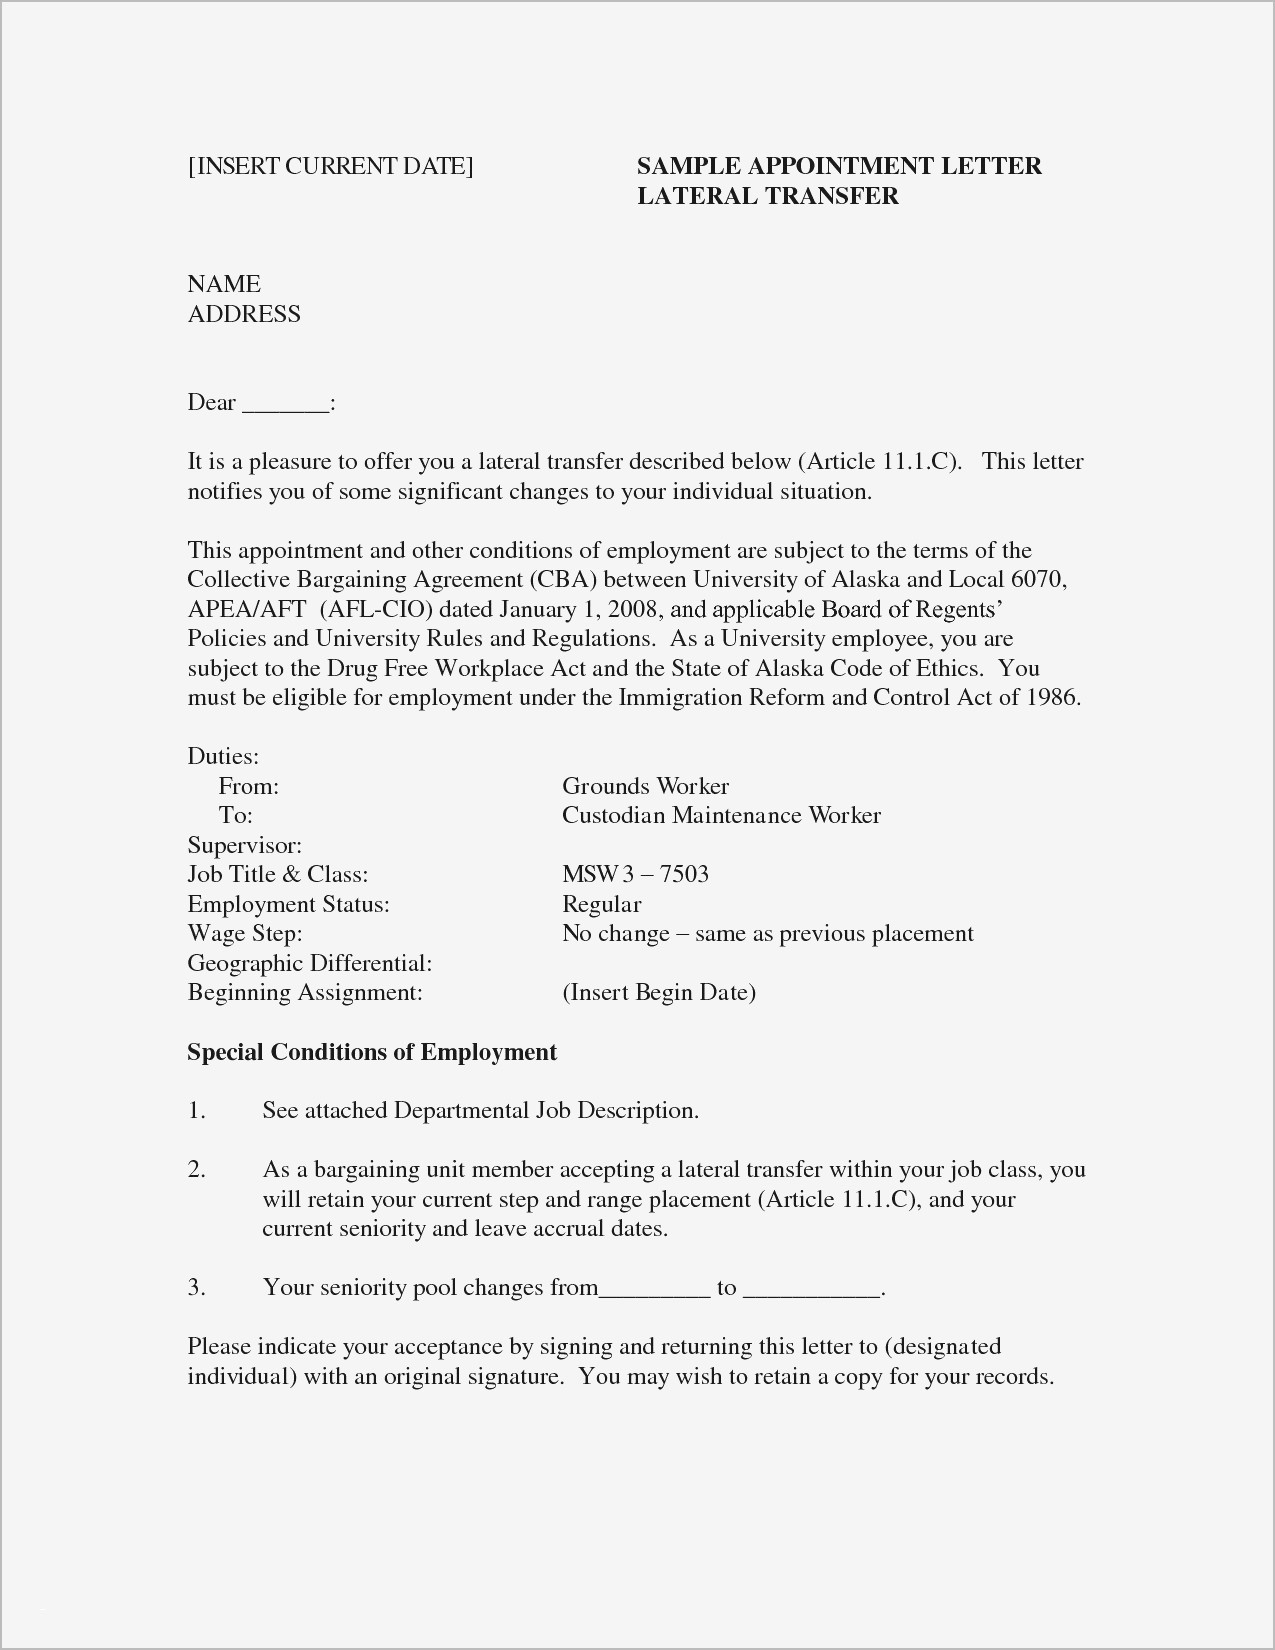 Resume without Work Experience - Sample Resume for Teenager with No Work Experience New Best Job